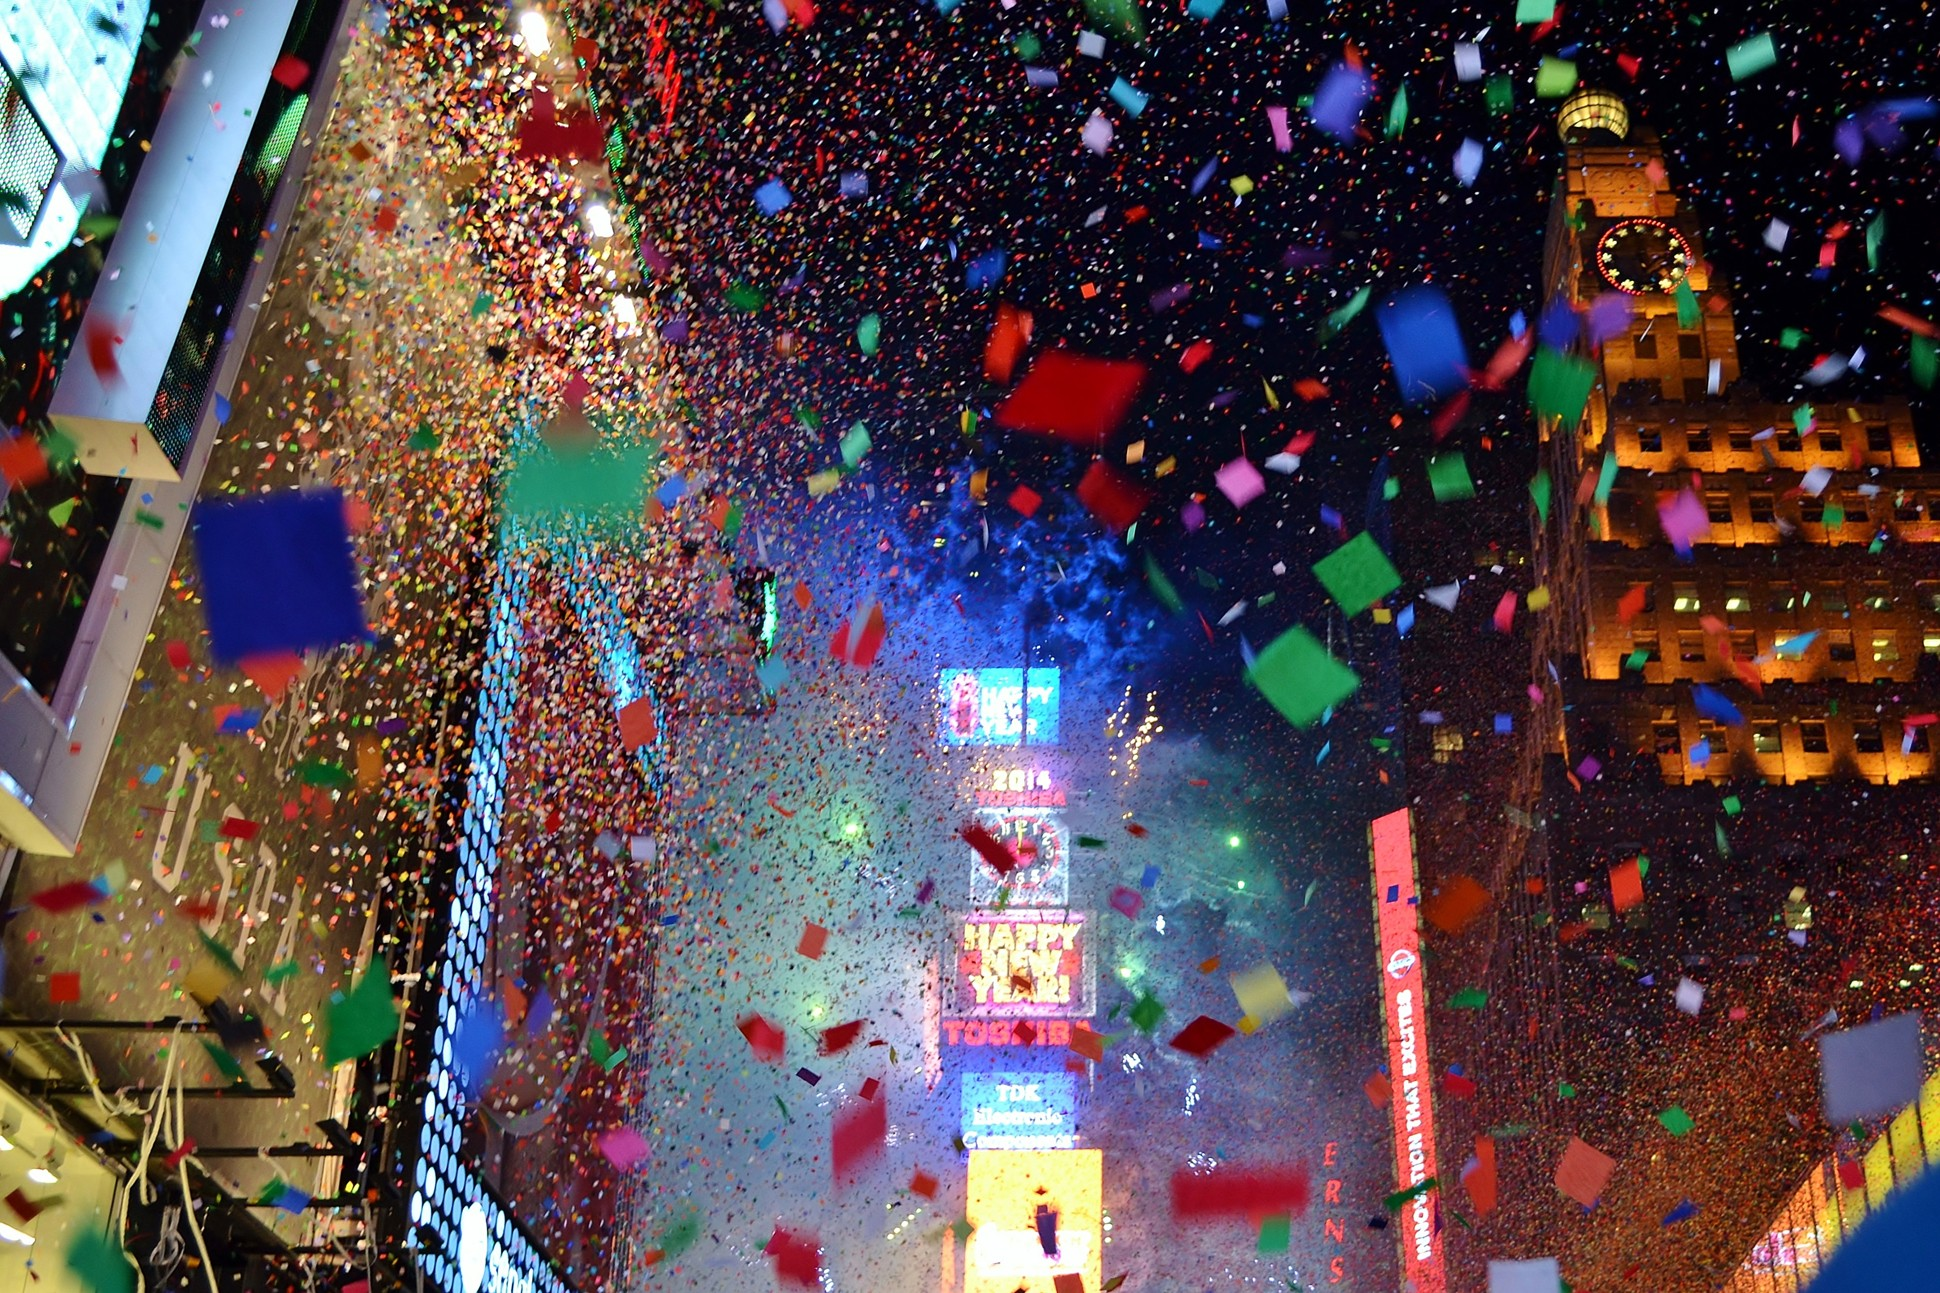 Photograph of Time's Square on New Year's Eve.